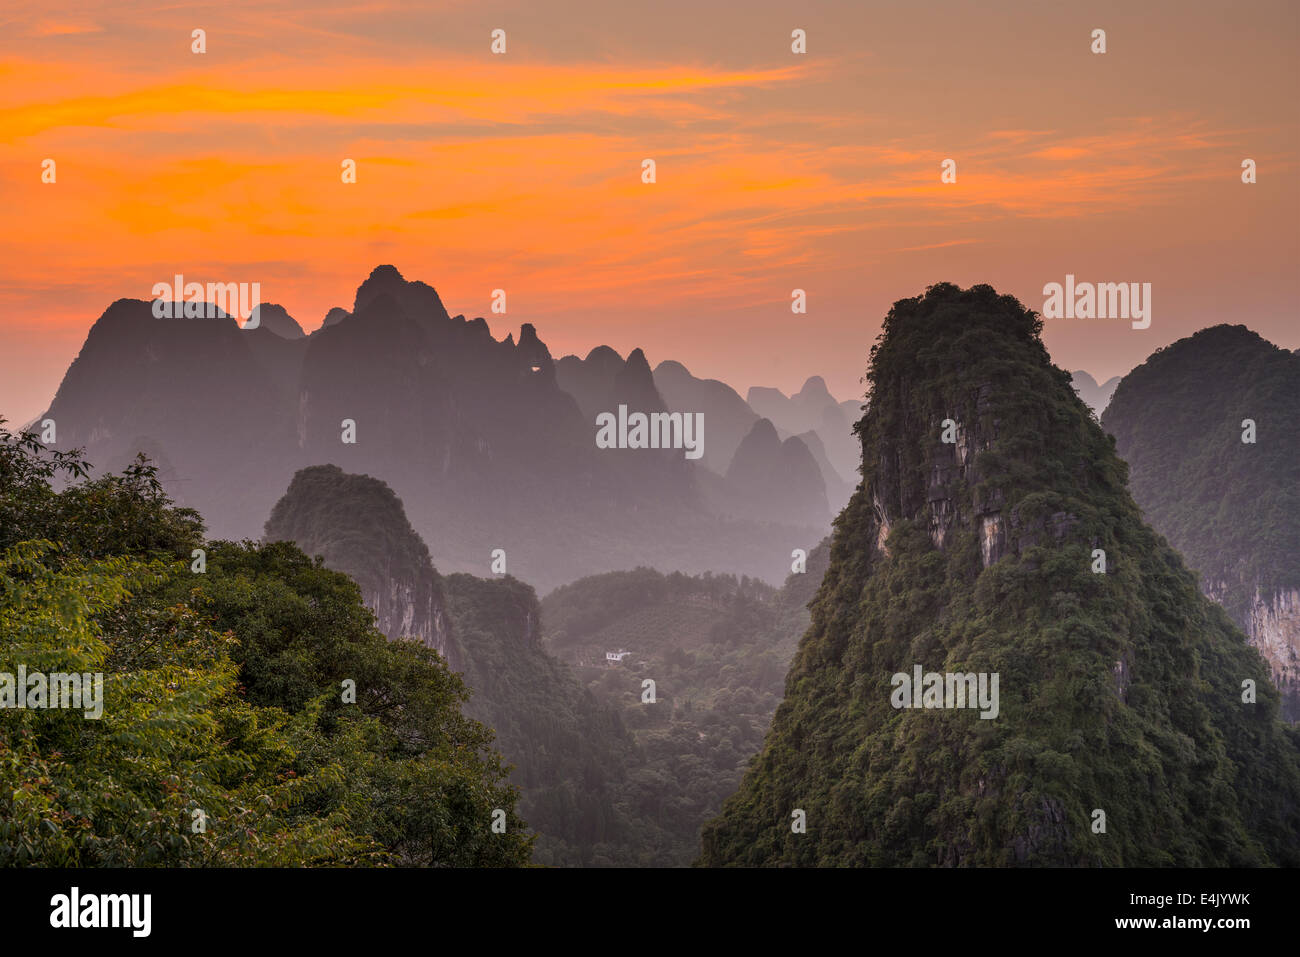 Karst mountain landscape in Xingping, Guangxi Province, China. - Stock Image